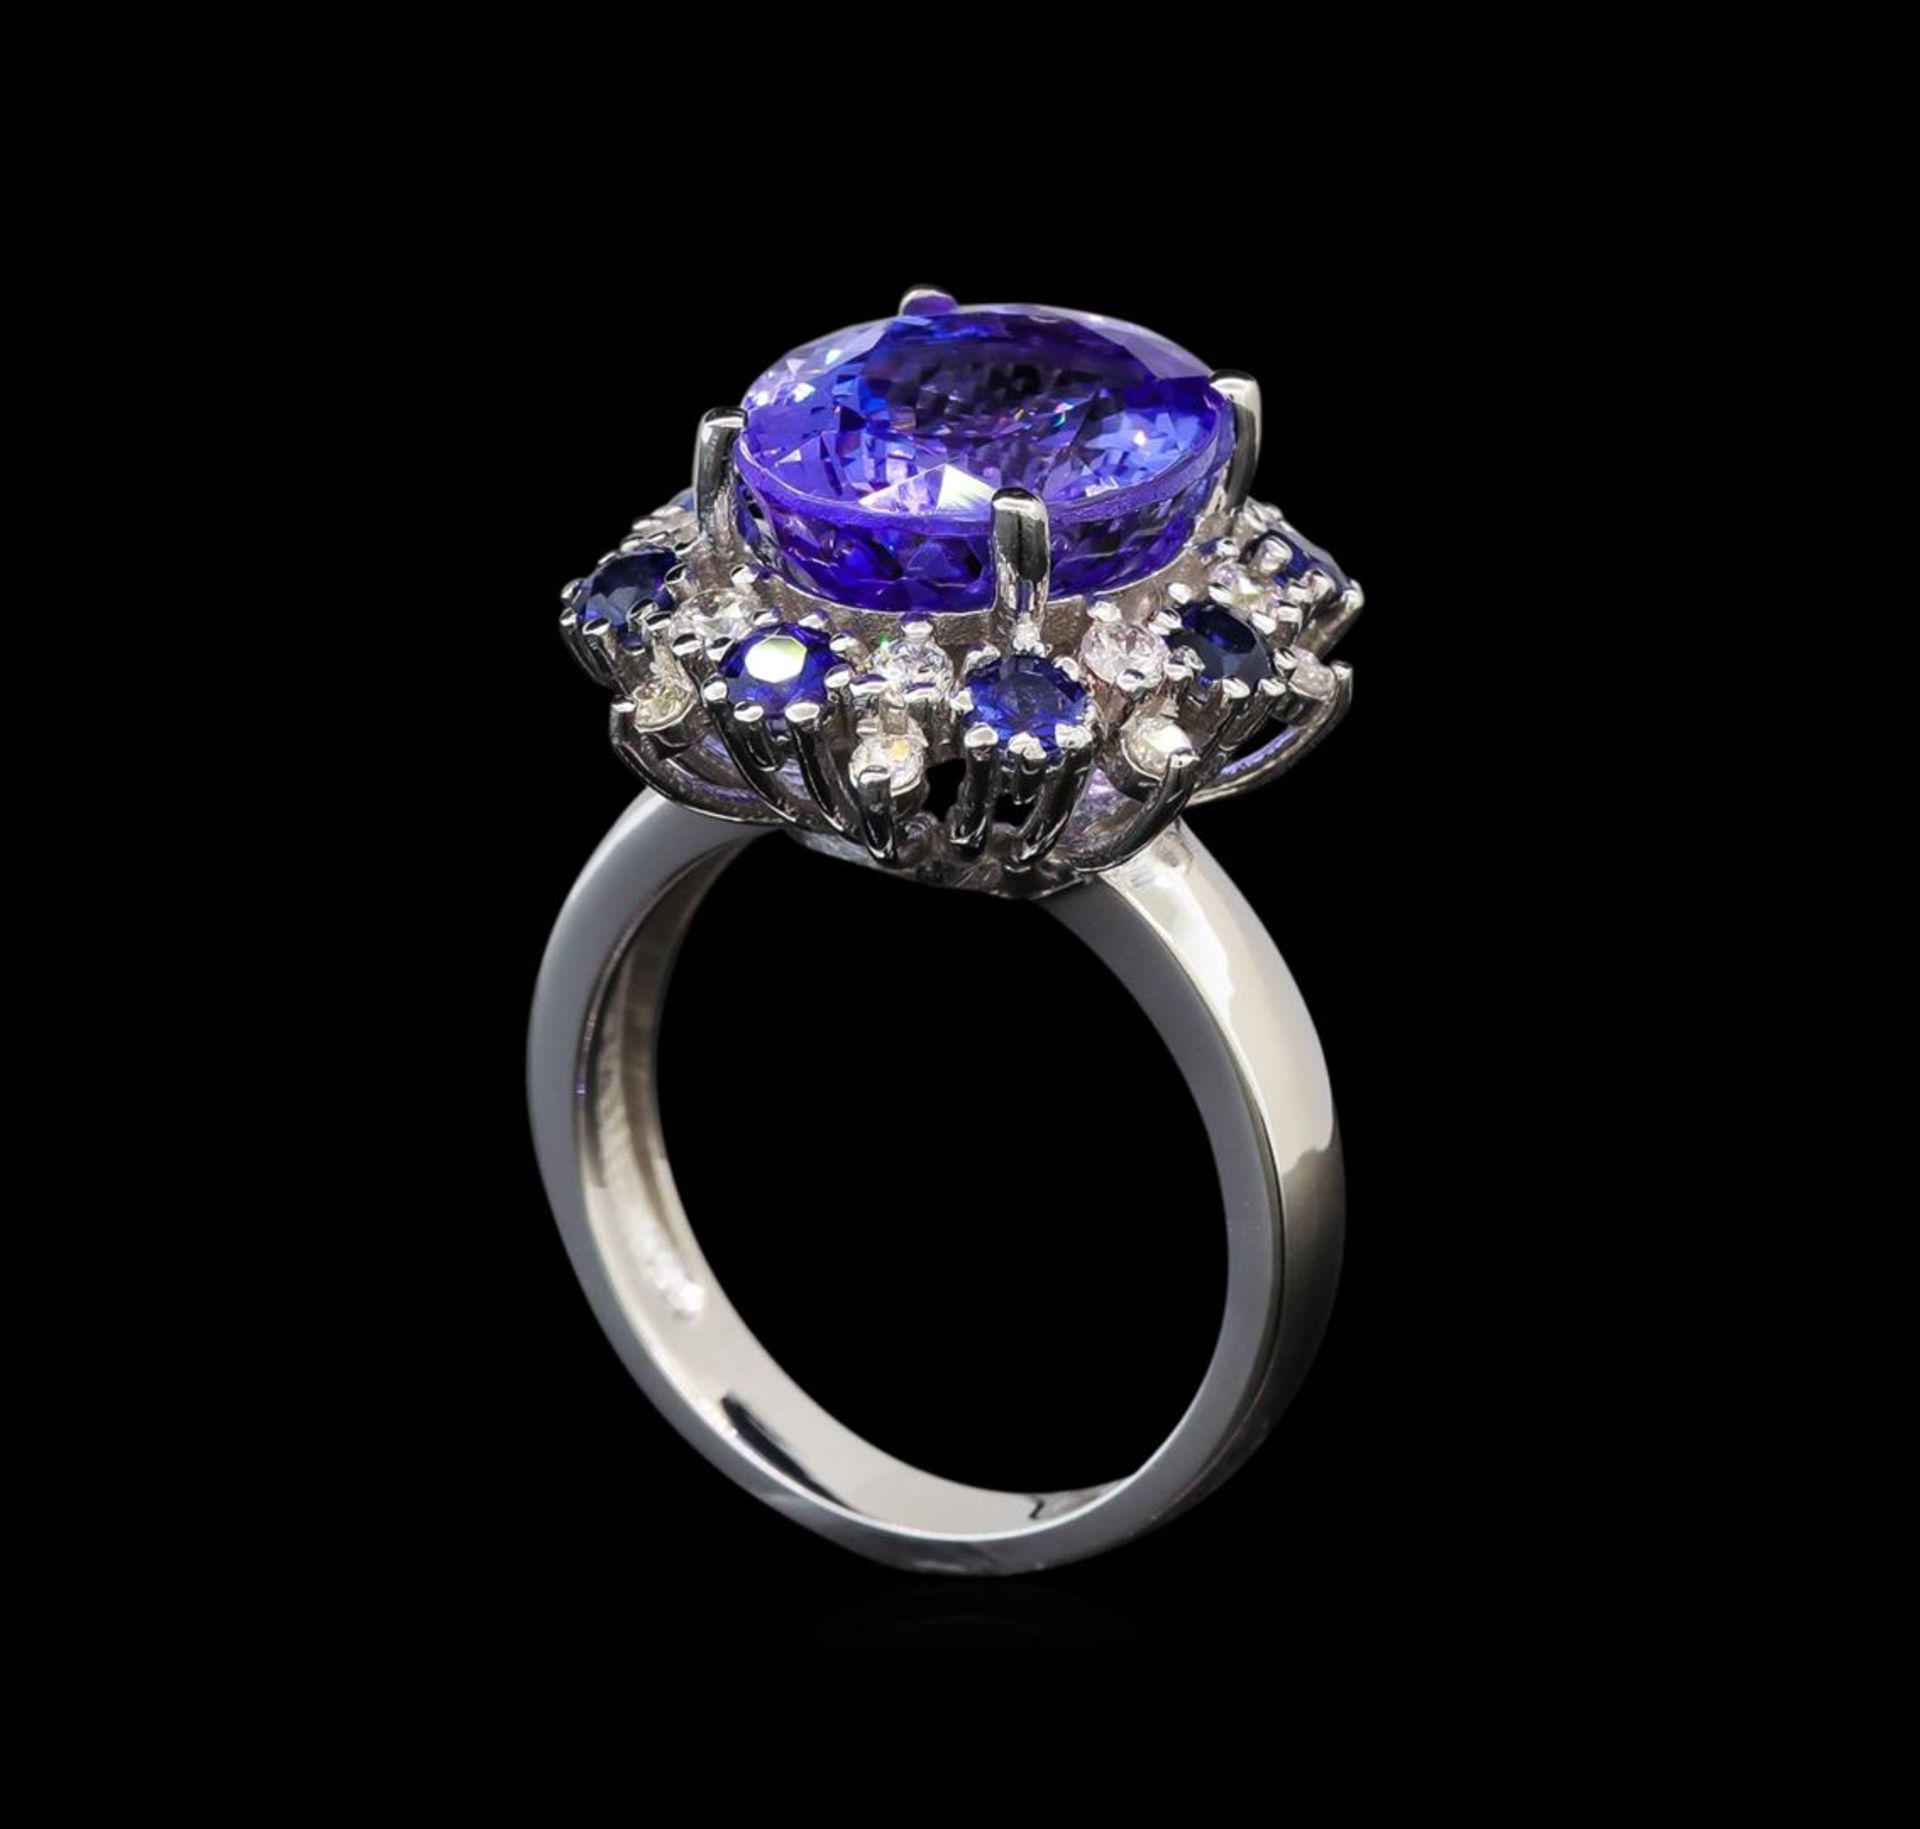 14KT White Gold 6.56 ctw Tanzanite, Sapphire and Diamond Ring - Image 4 of 5